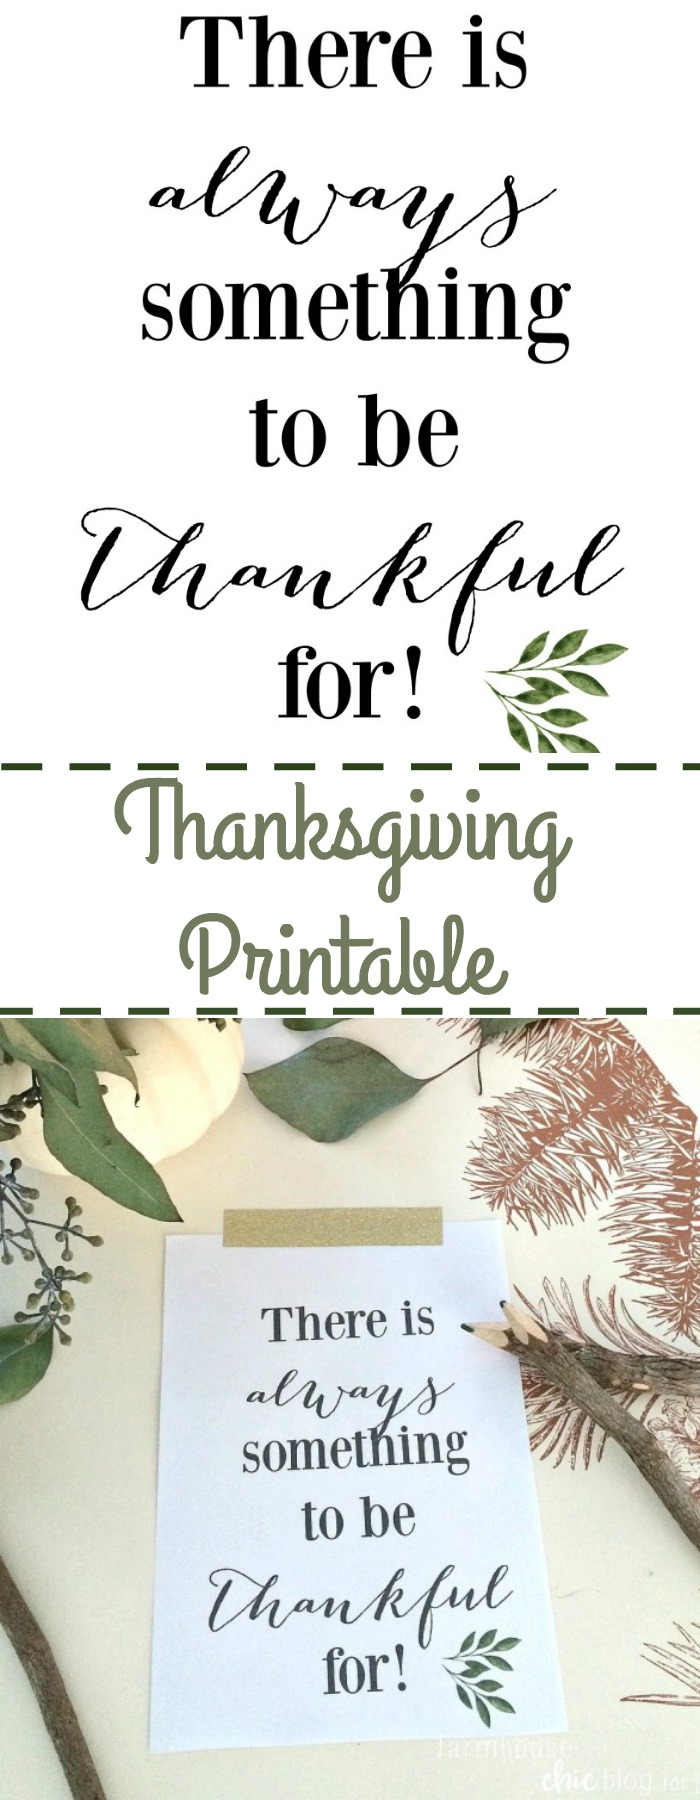 A perfect reminder that we have so much to be thankful for! This free printable makes a great last minute decoration too.